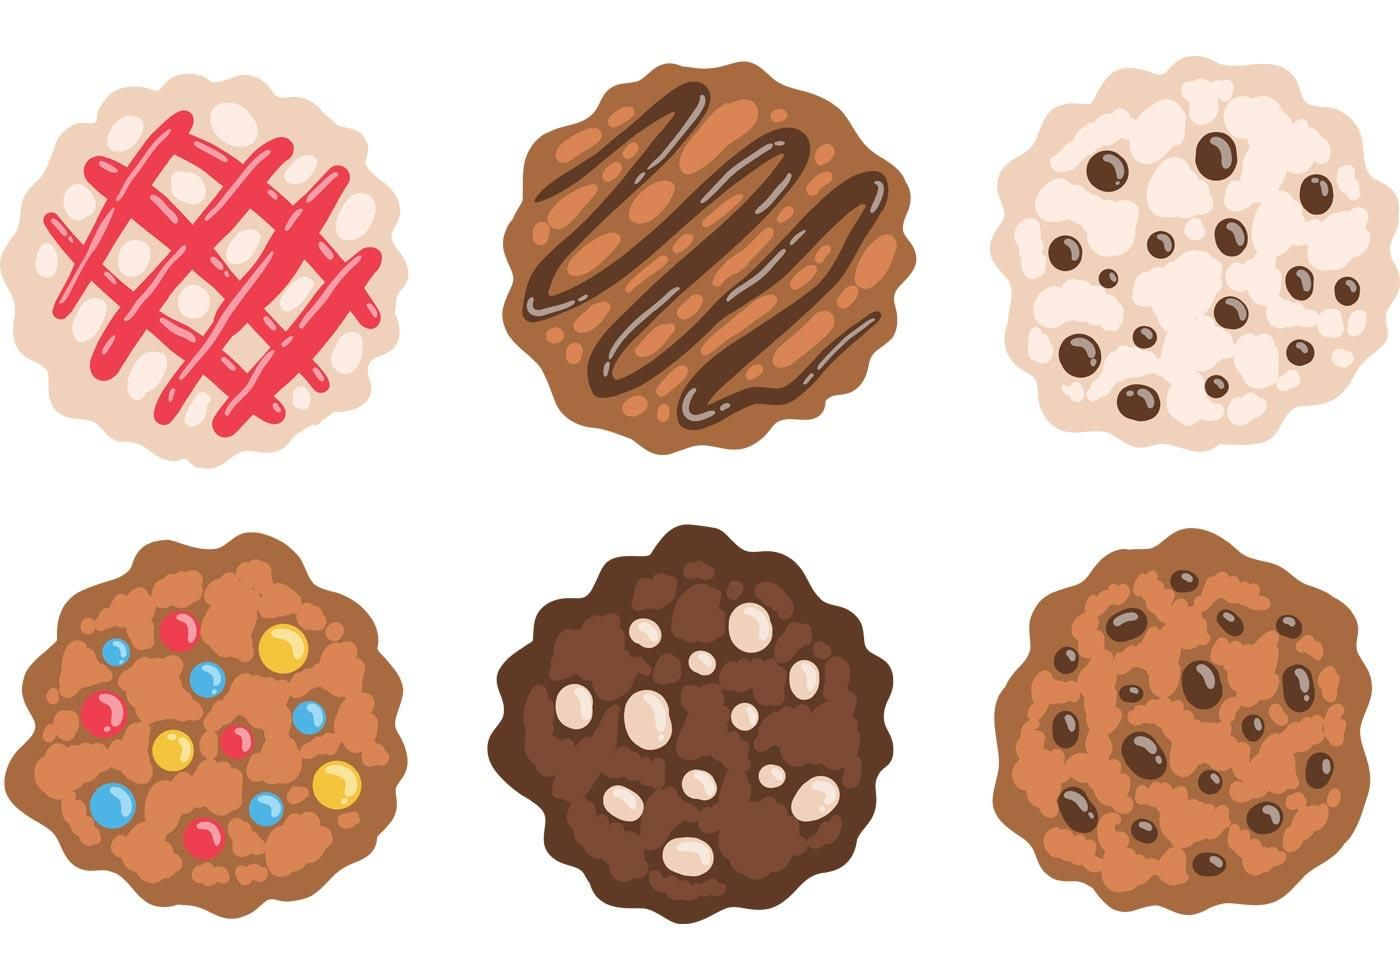 Free Chocolate Chip Cookies Vector Chocolate Chip Cookies Cookie Clipart Cookie Vector